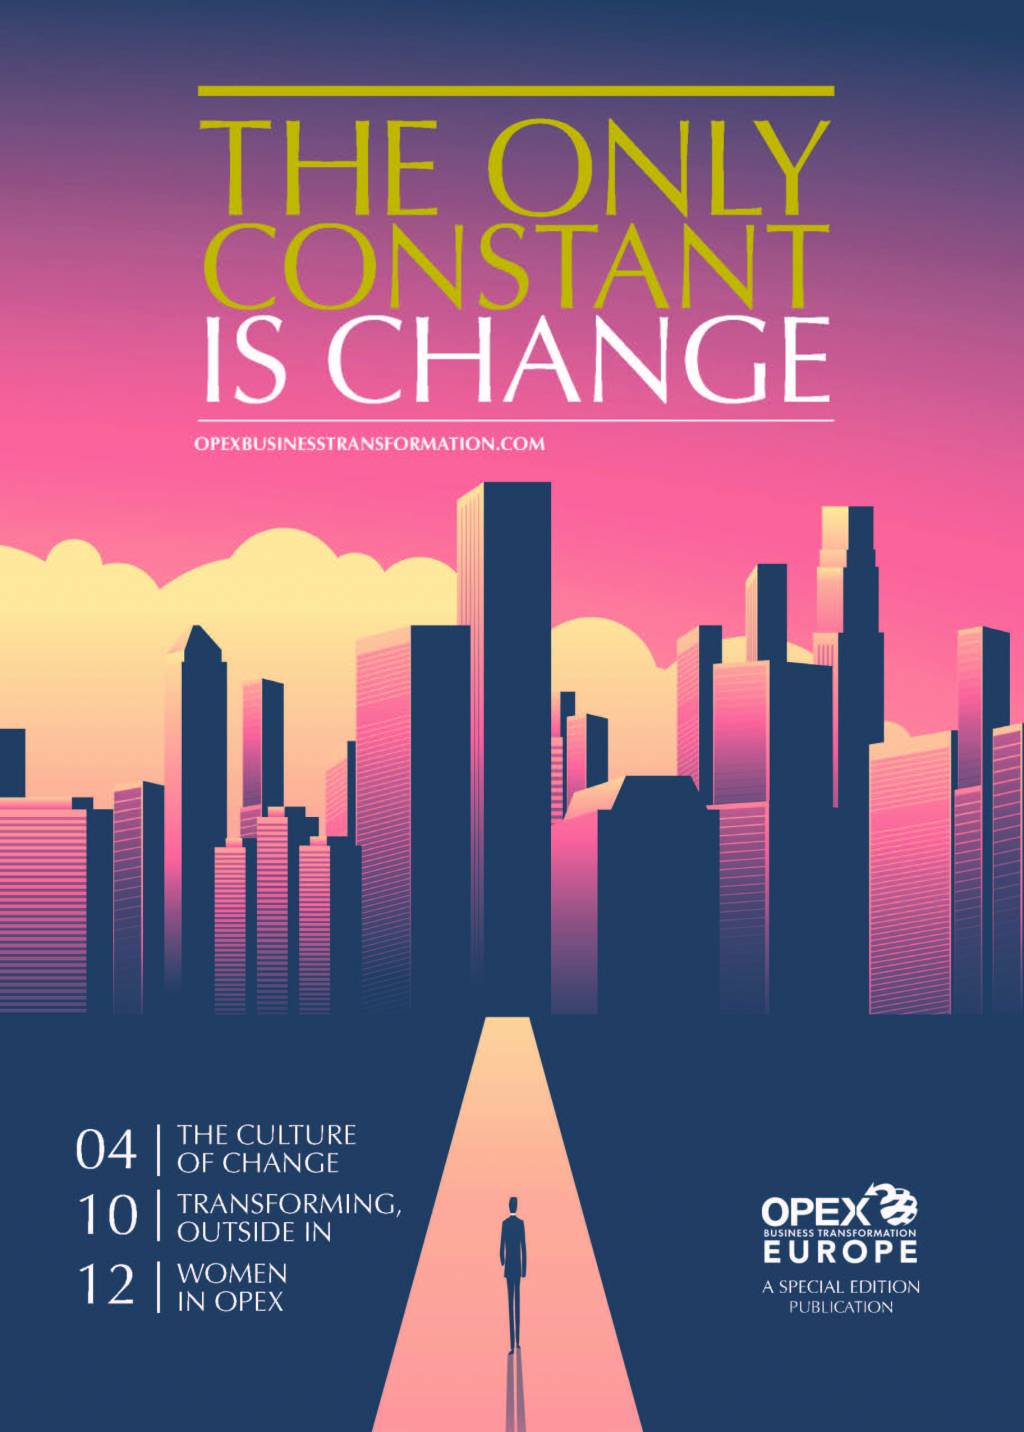 Exclusive Digital Magazine - The Only Constant is Change